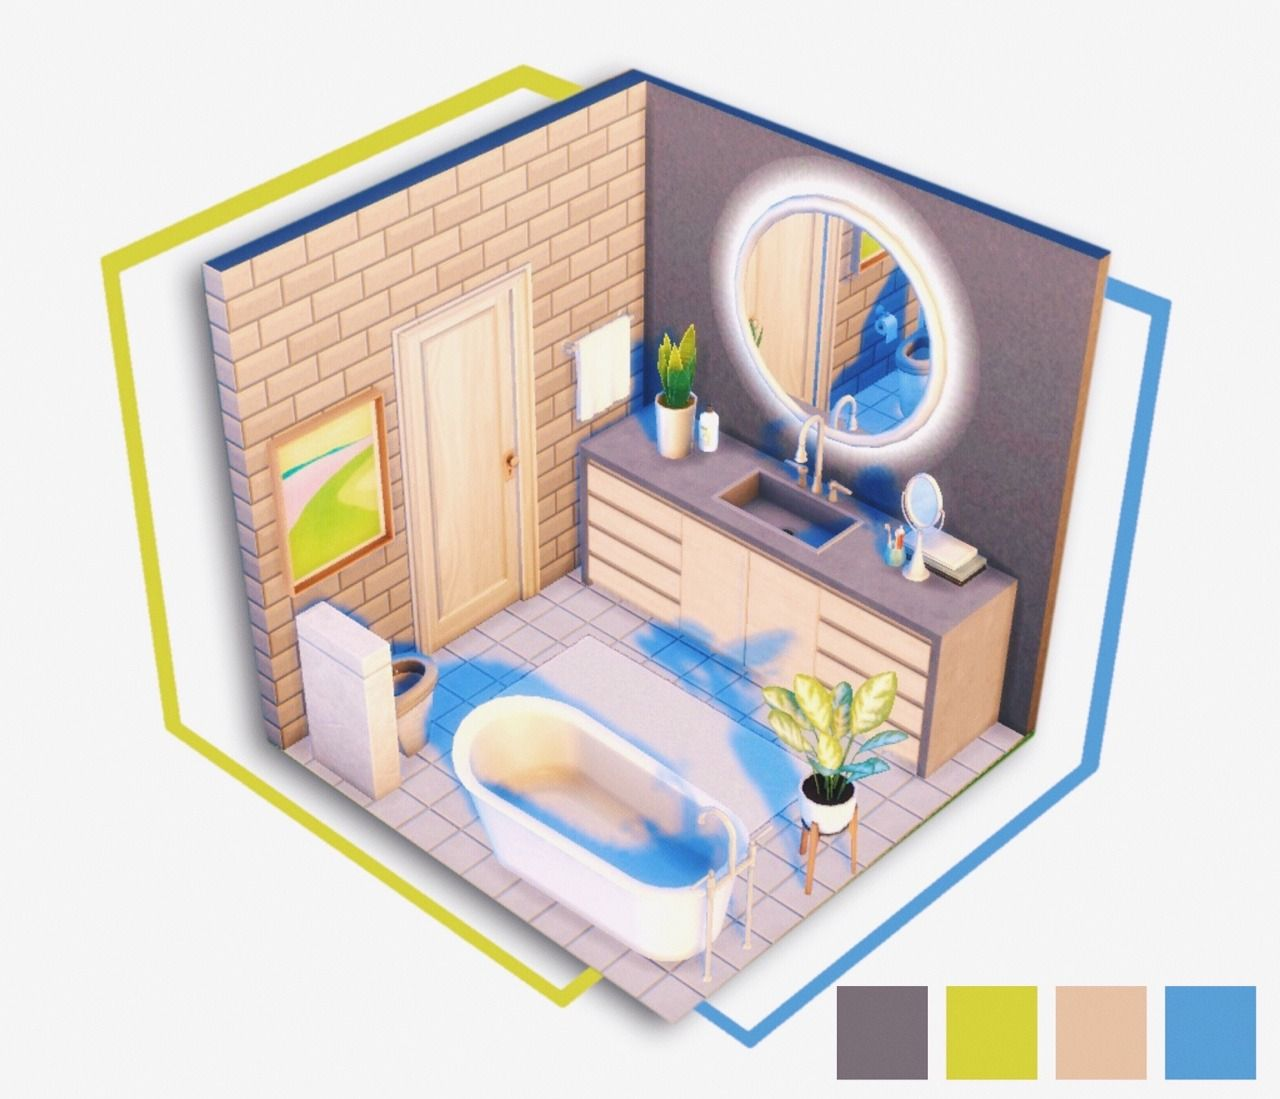 Simvope Sims 4 House Design Sims 4 Bedroom Sims House